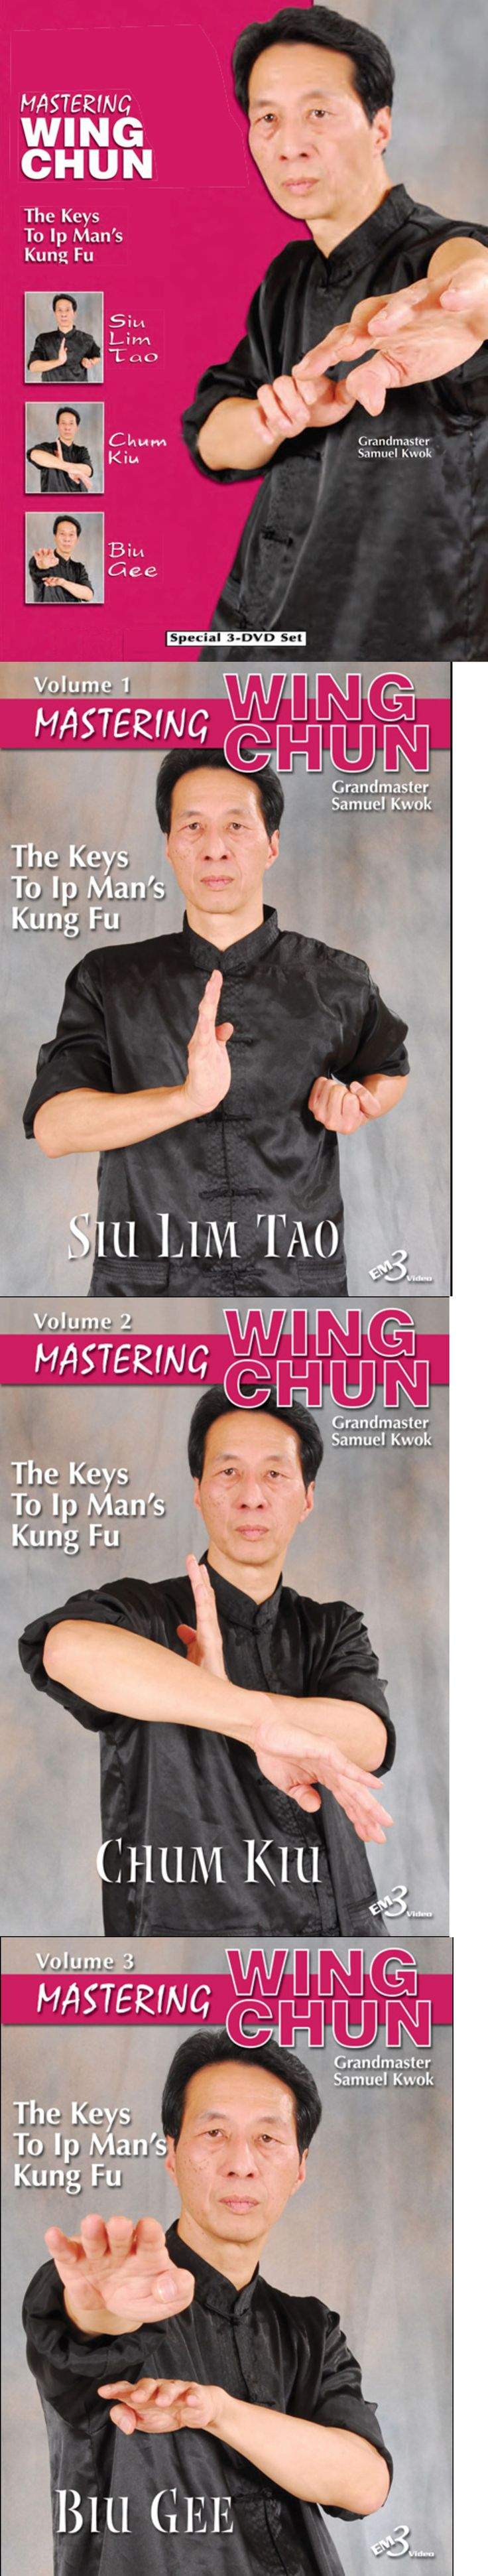 DVDs Videos and Books 73991: Samuel Kwok Learn Wing Chun Compendium Kung Fu Training Dvd Videos 3 Disc Set -> BUY IT NOW ONLY: $69.95 on eBay!